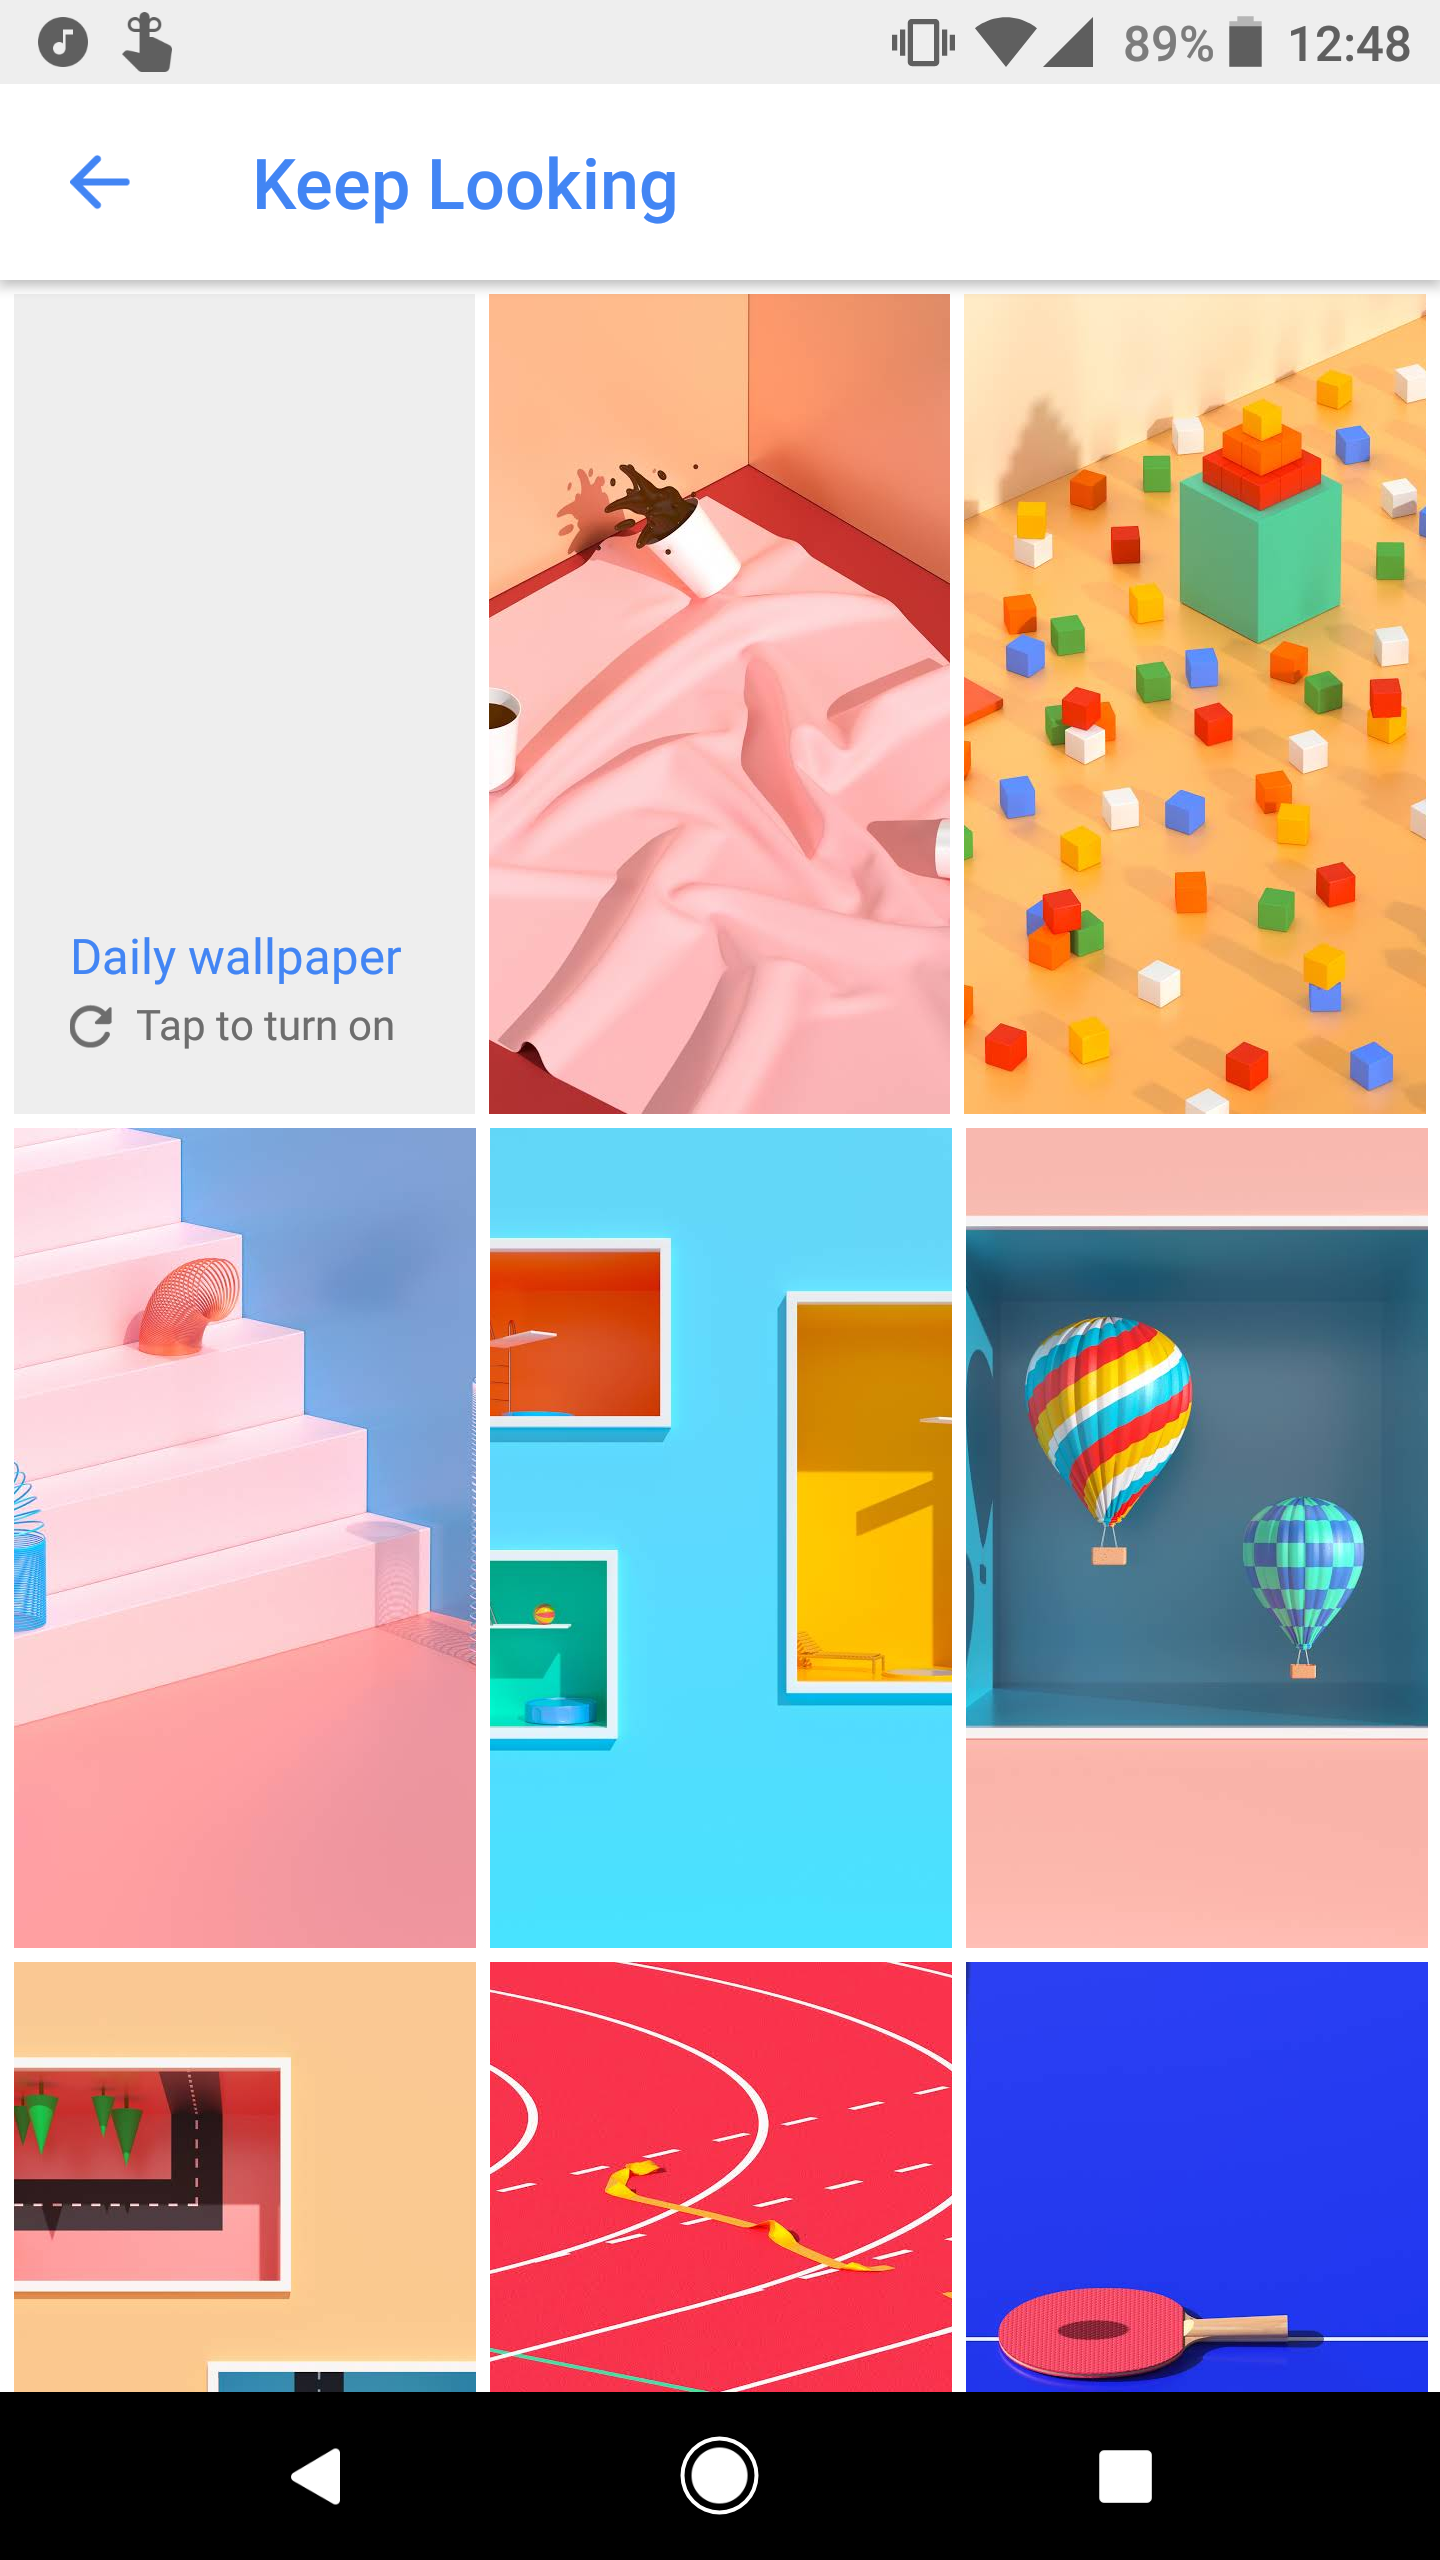 Second There Are New Wallpapers In Different Categories But They Also Appear To Be Pixel Exclusive For Now Those Include The Rainy Day Wallpaper Seen On